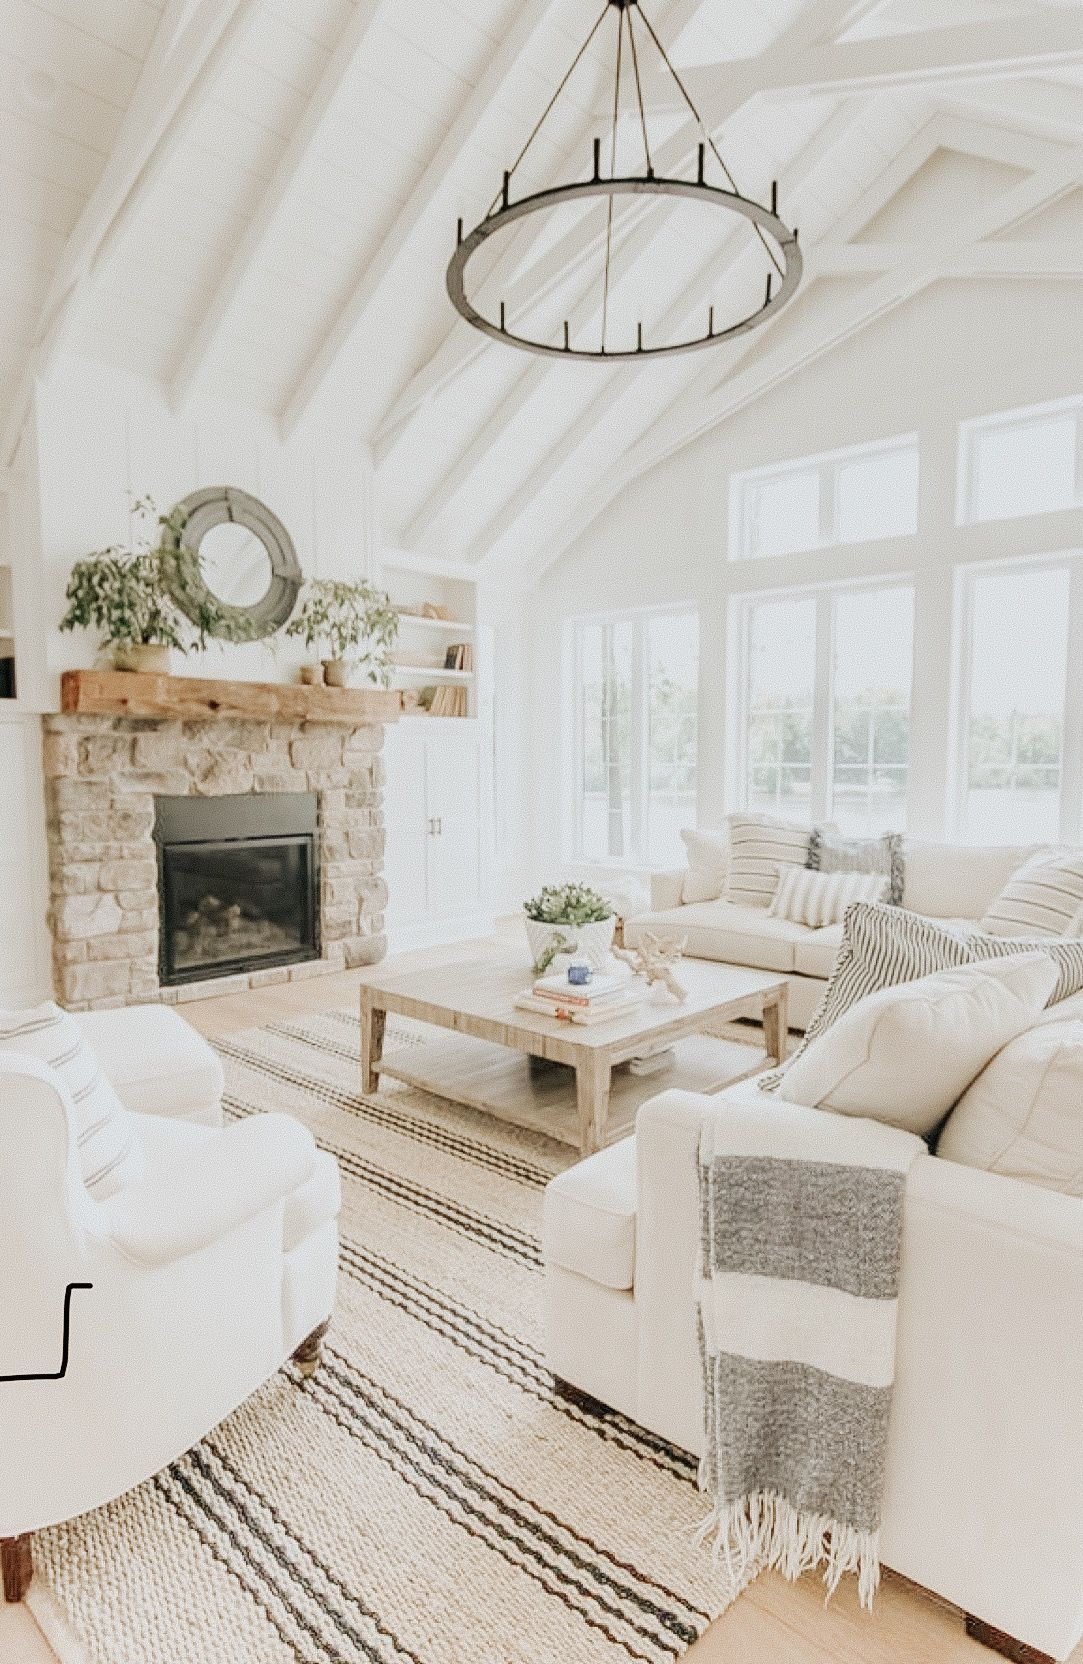 The Most Pinteresting Things this Month - June — Farmhouse Living